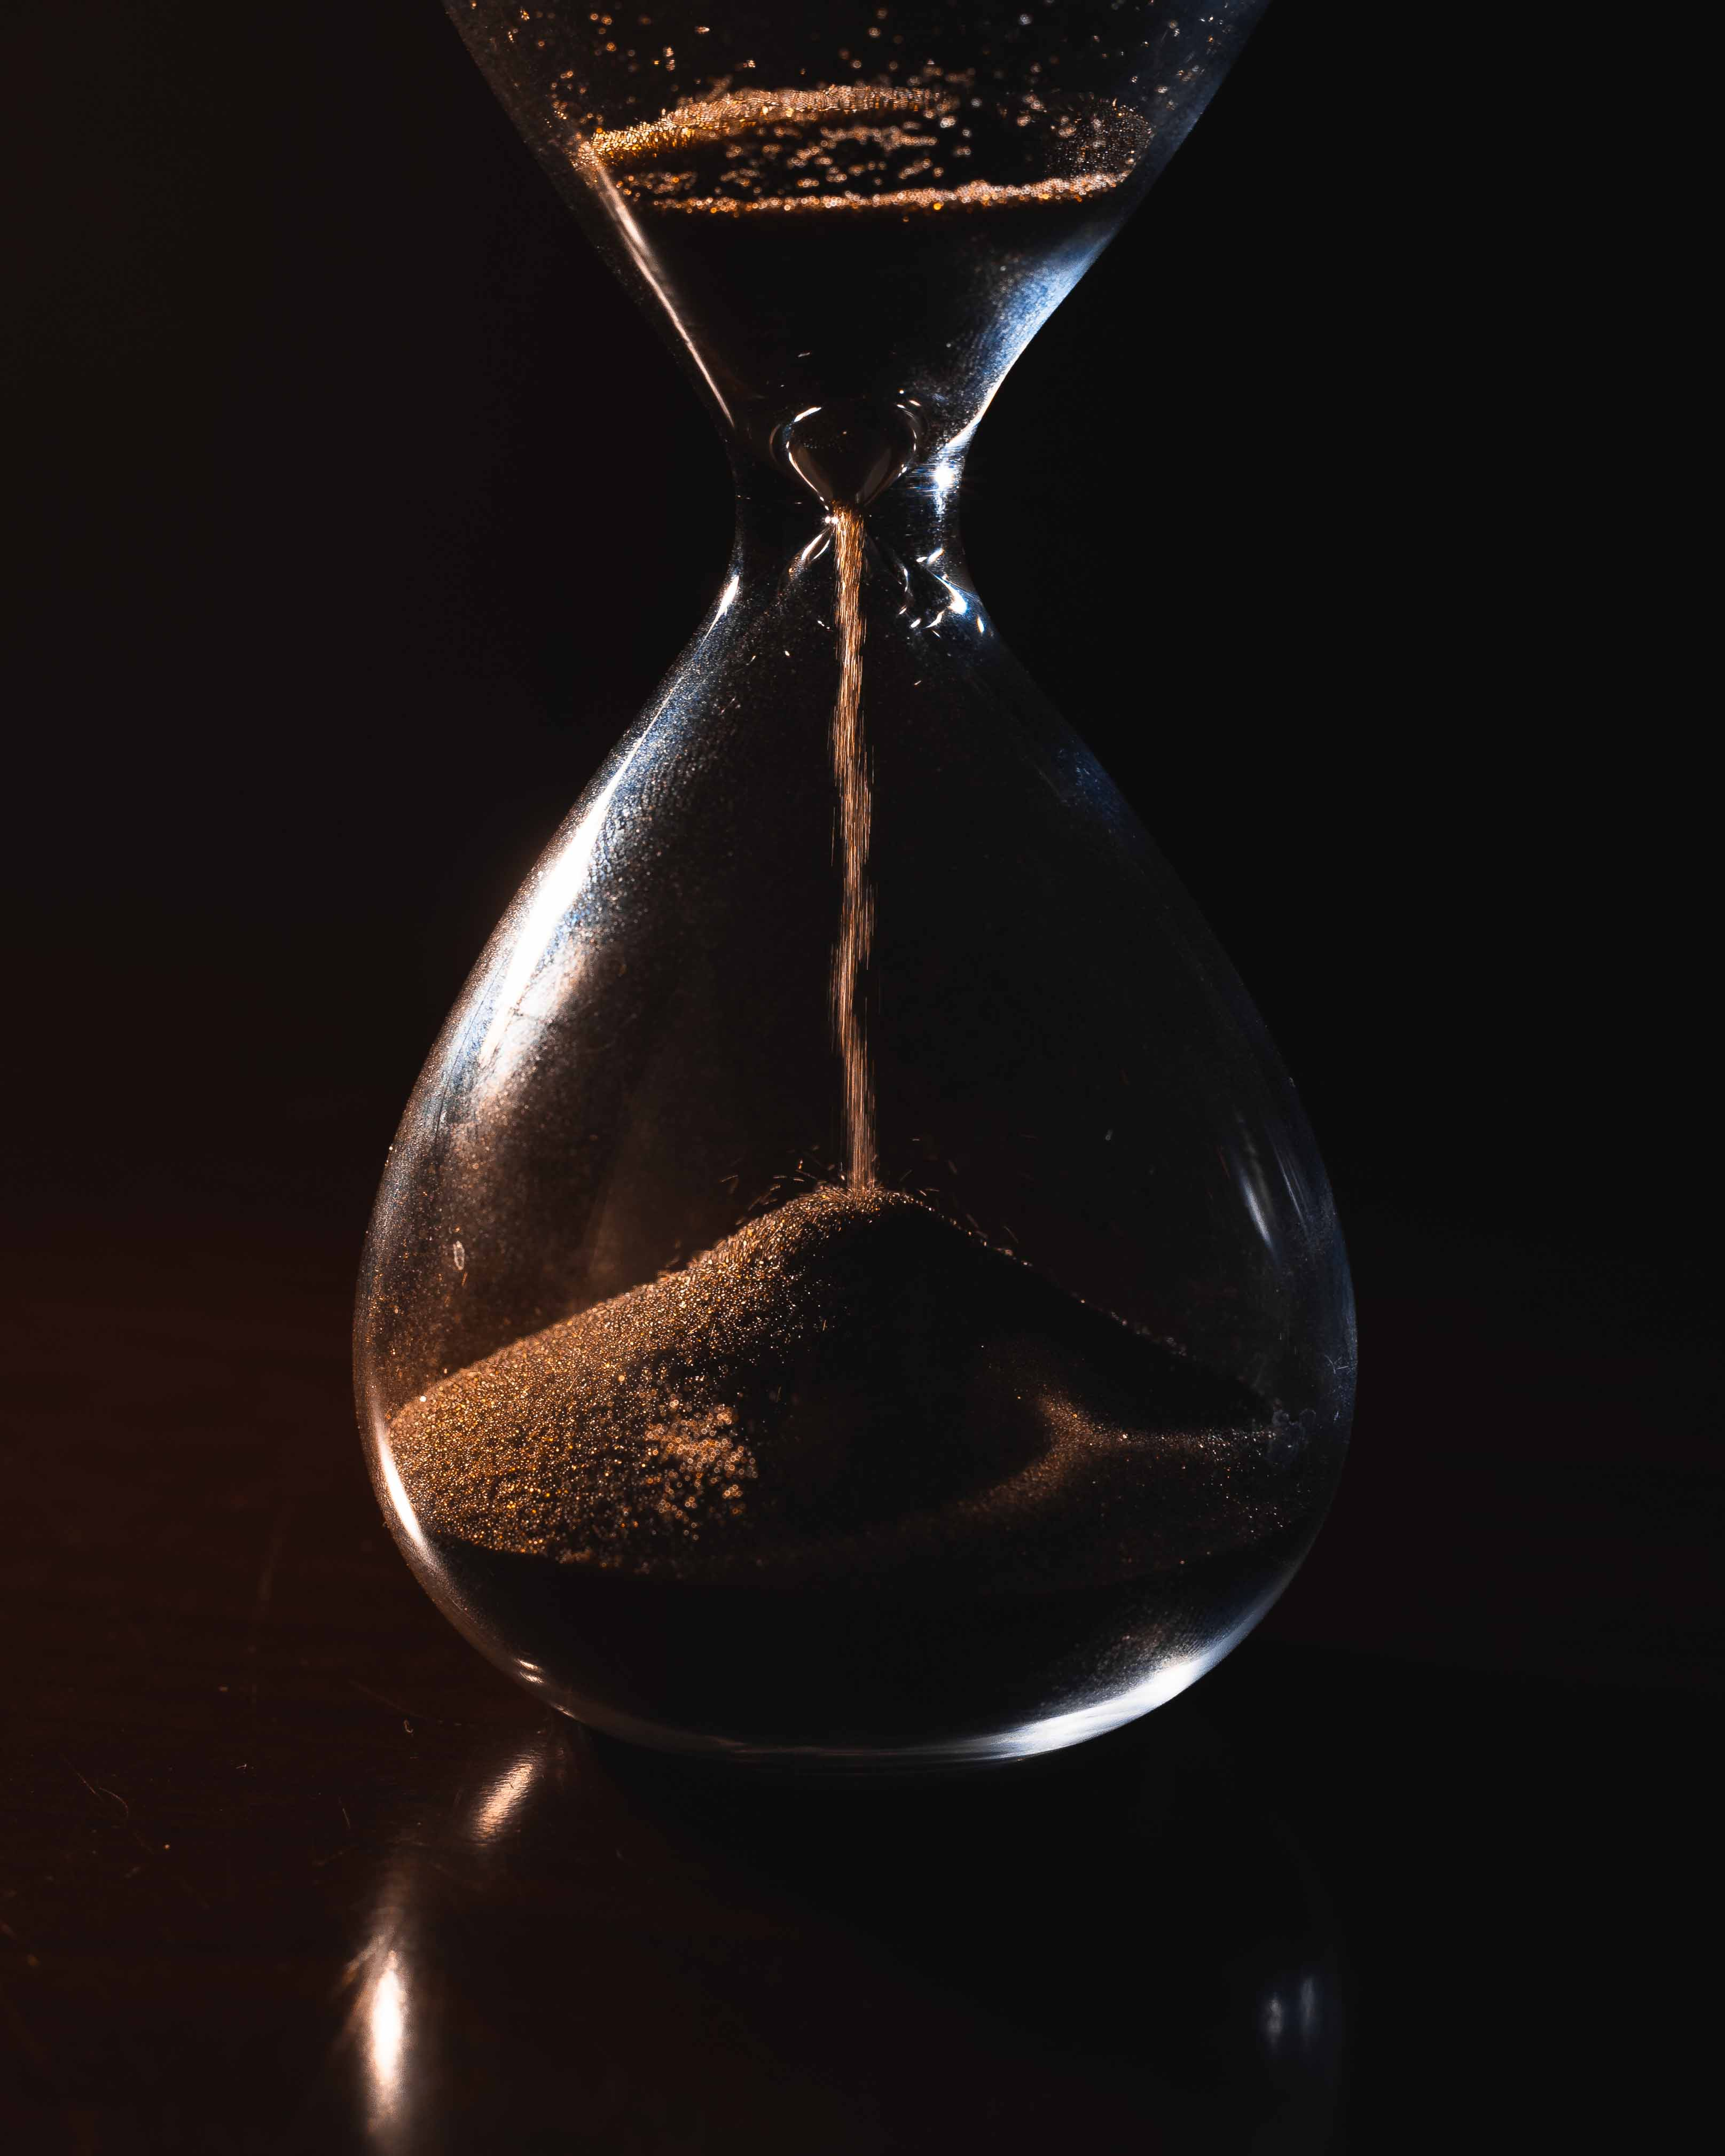 Hourglass in motion